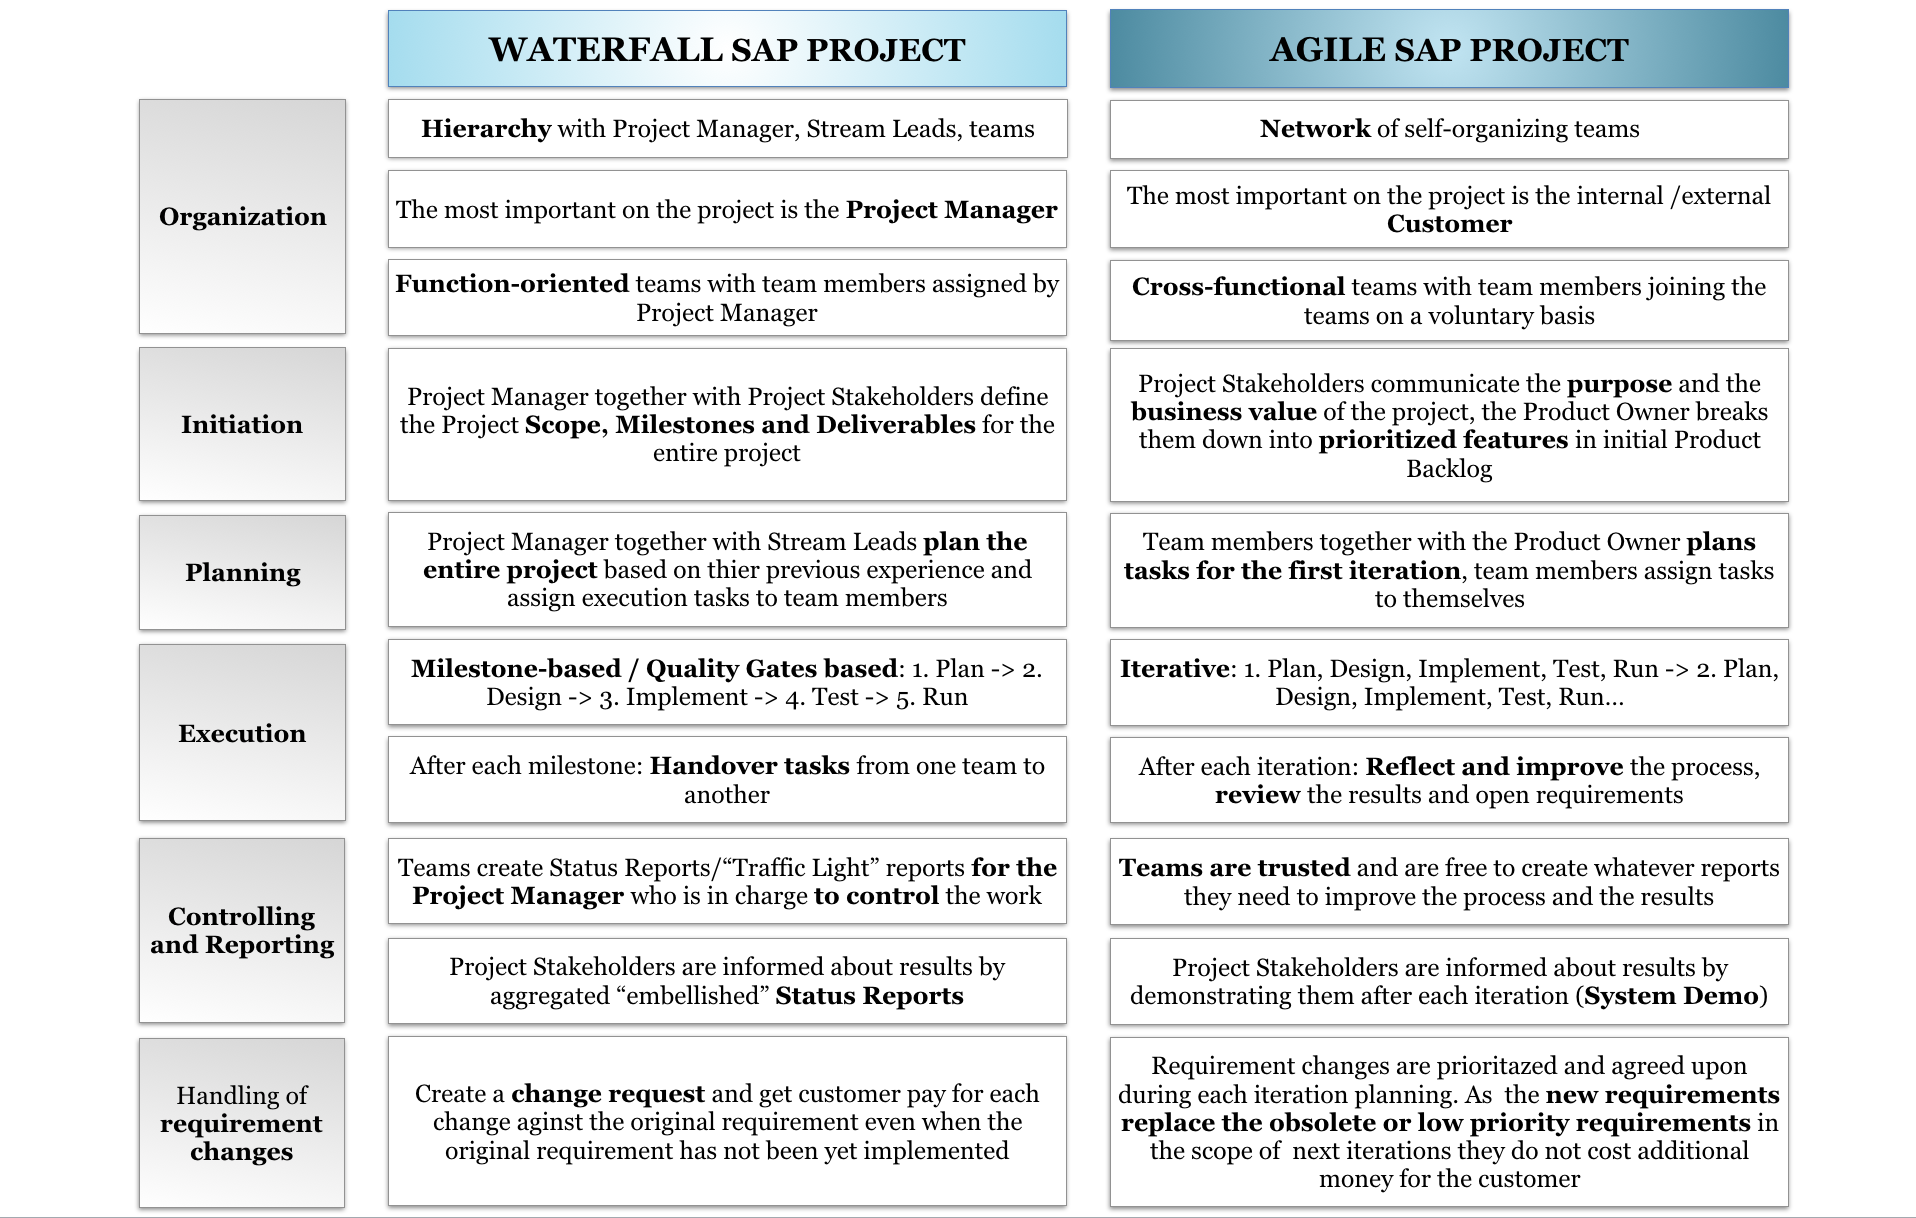 Characteristics of Waterfall and Agile SAP projects_Agilon GmbH